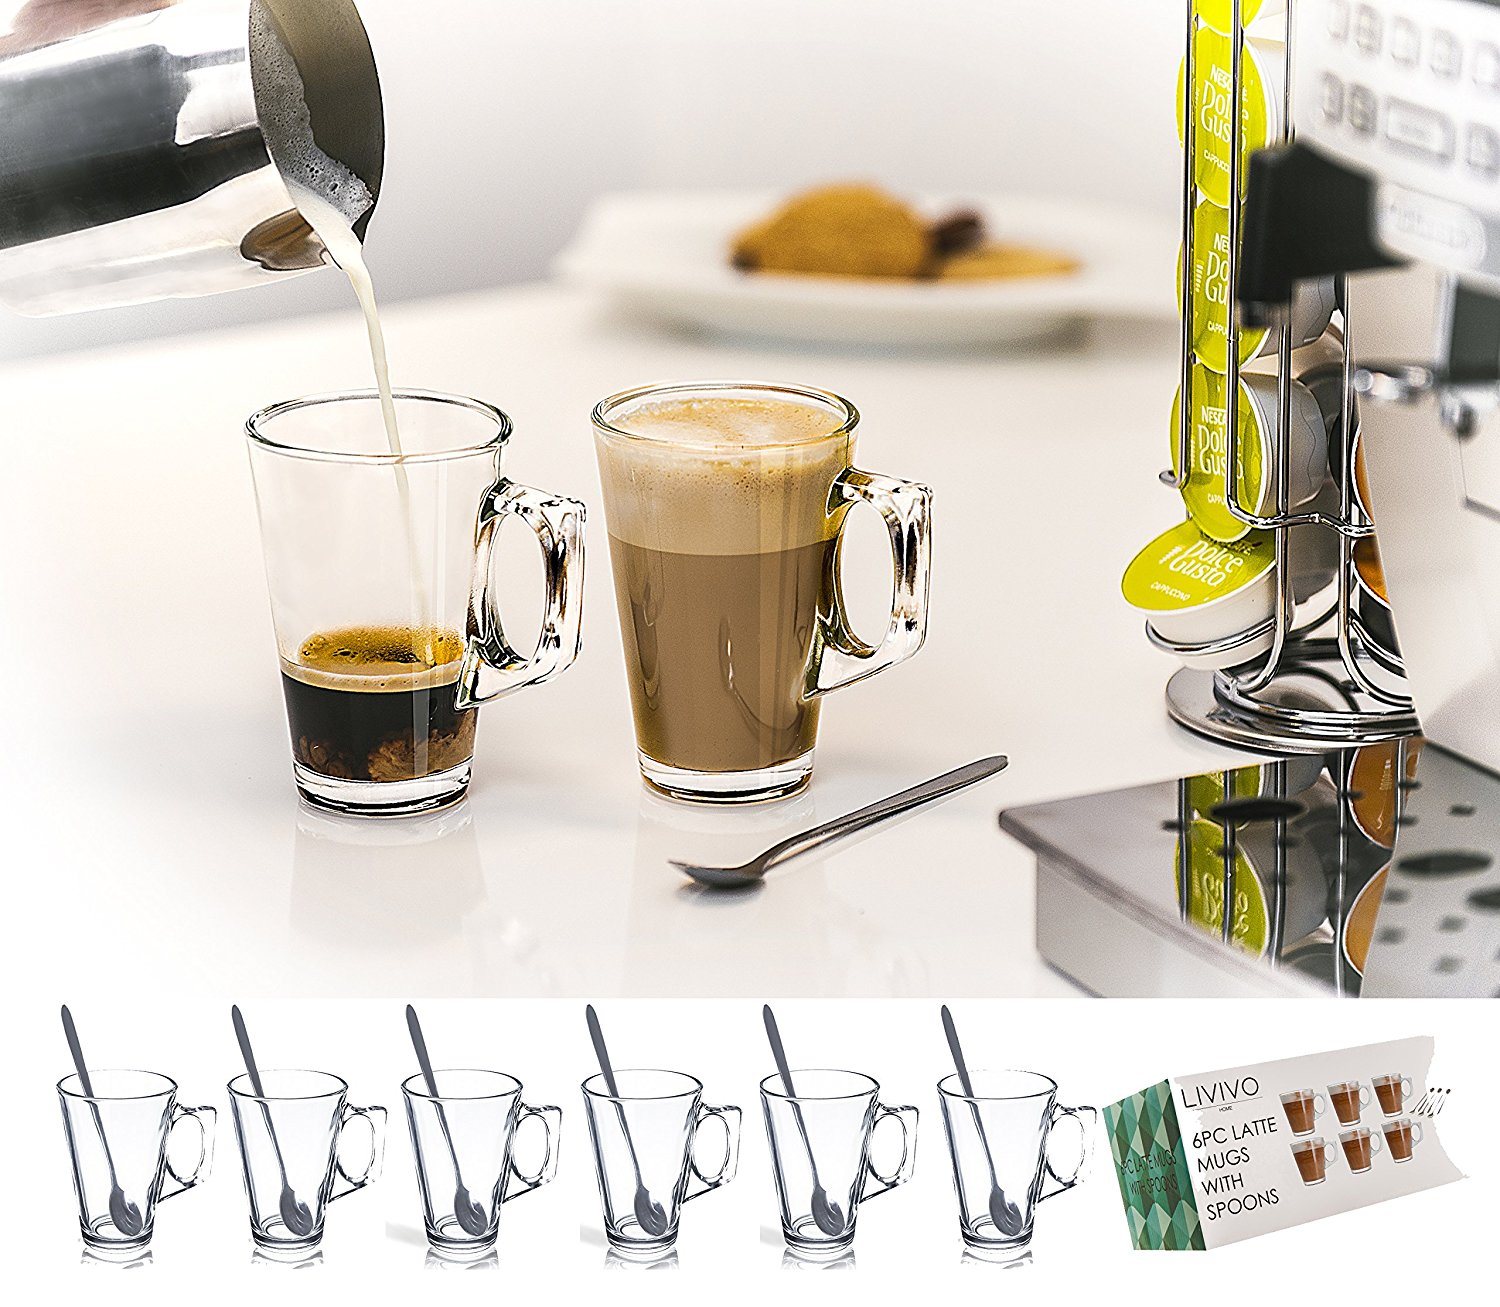 1c70cedf583 Details about 40 Nespresso Coffee Pod Tower Stand Holder W/ 6x240ML Latte  Glasses Mugs Spoons